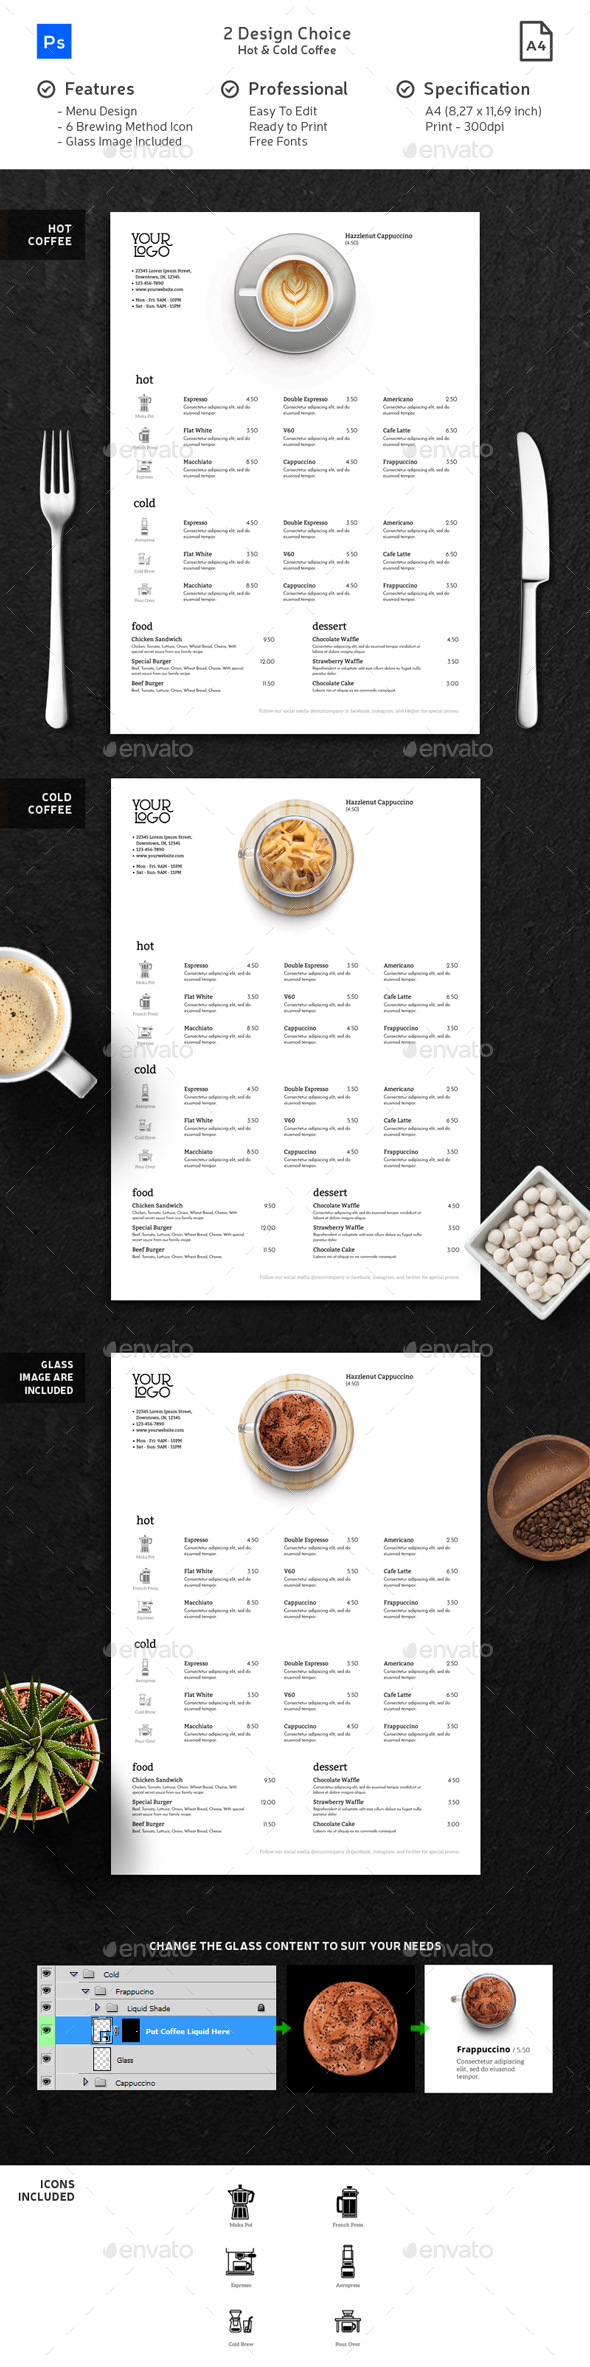 Minimalist Photography Coffee Menu 2